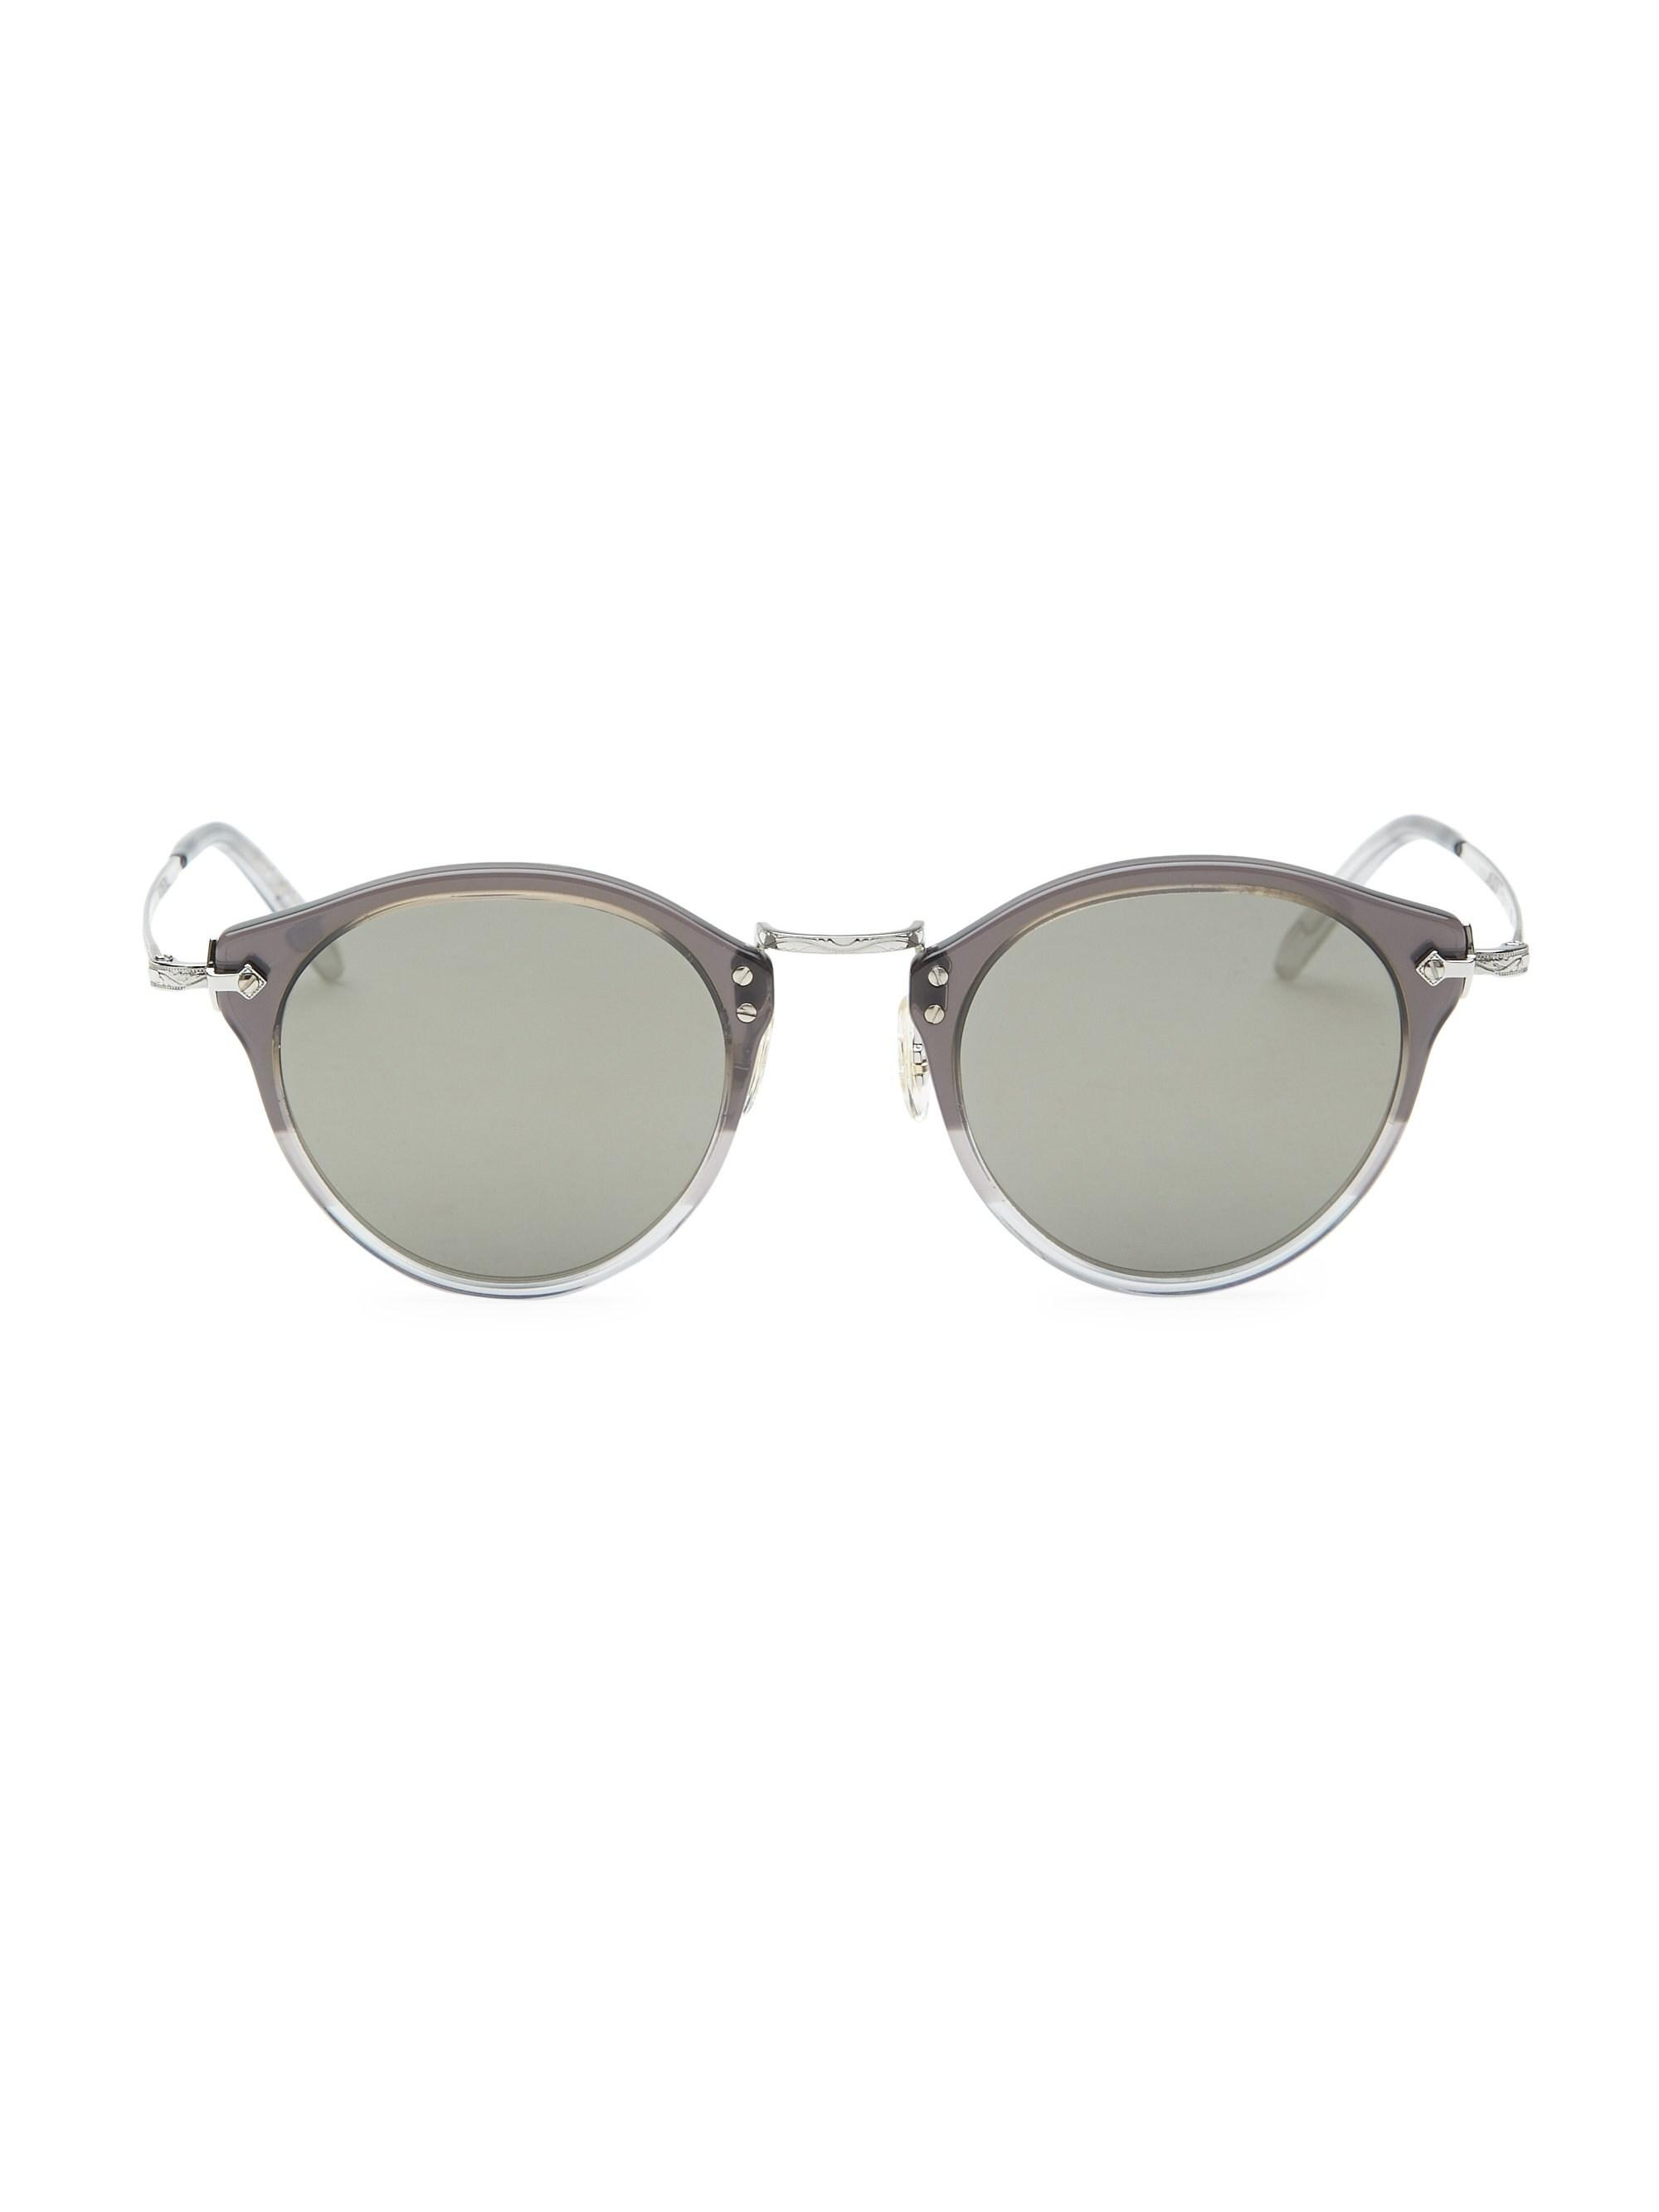 56acba3fa50 Oliver Peoples 49mm Round Sunglasses for Men - Lyst